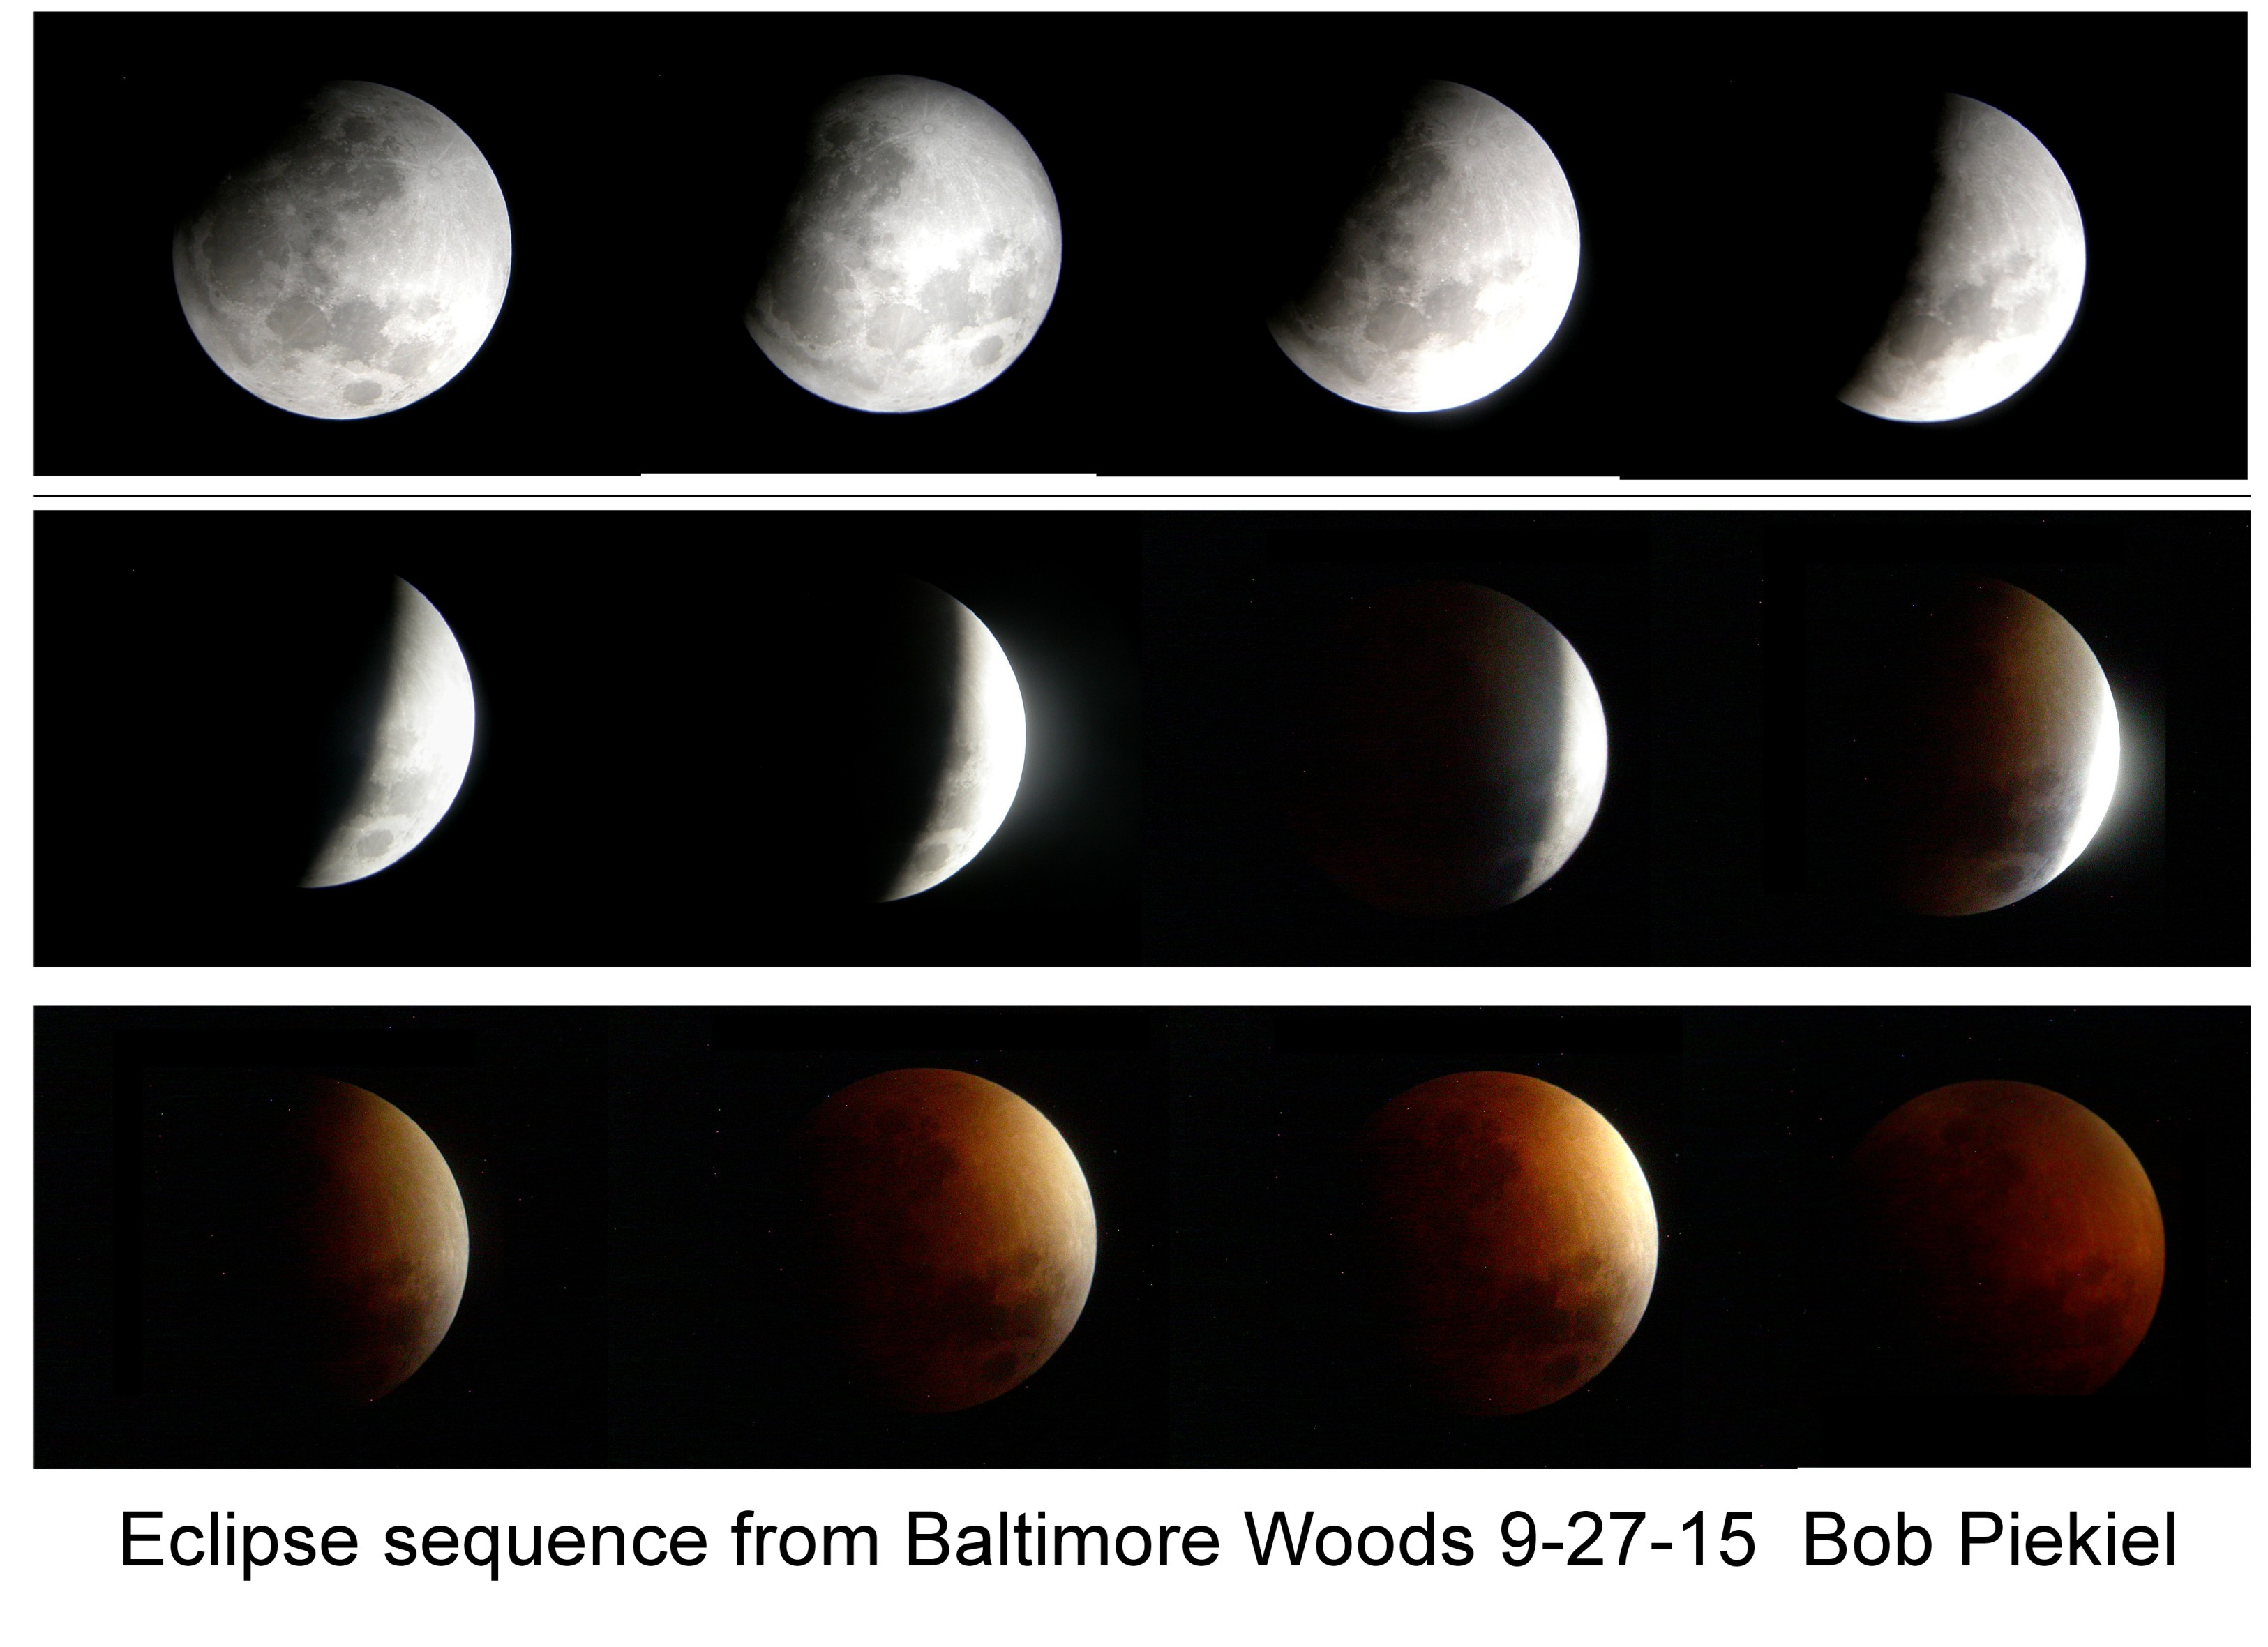 2015december30_2015sept27_eclipse_sequence